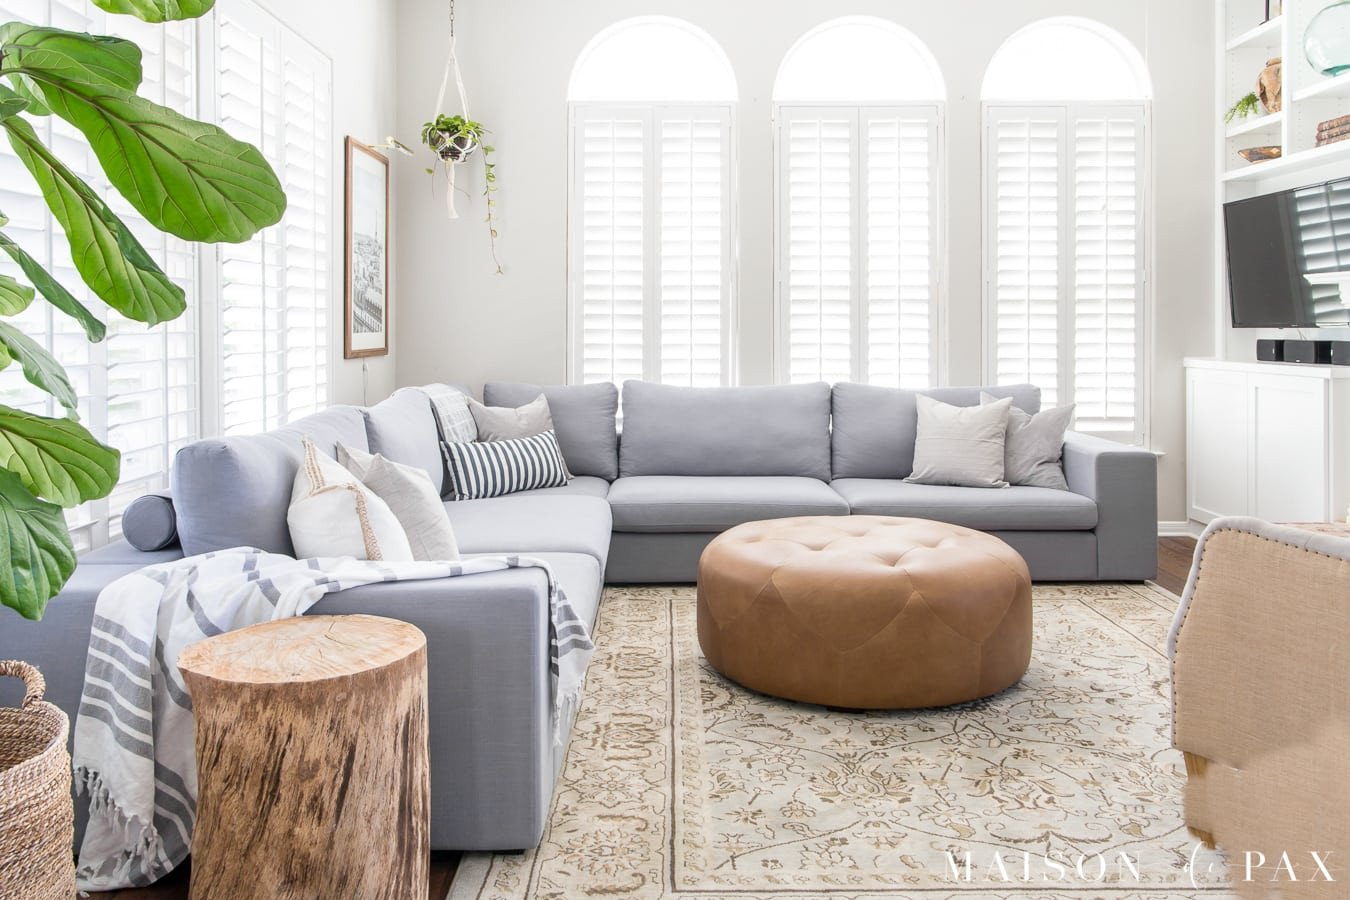 Small Blue Living Room Ideas Best Of Designing A Small Living Room with A Sectional Maison De Pax